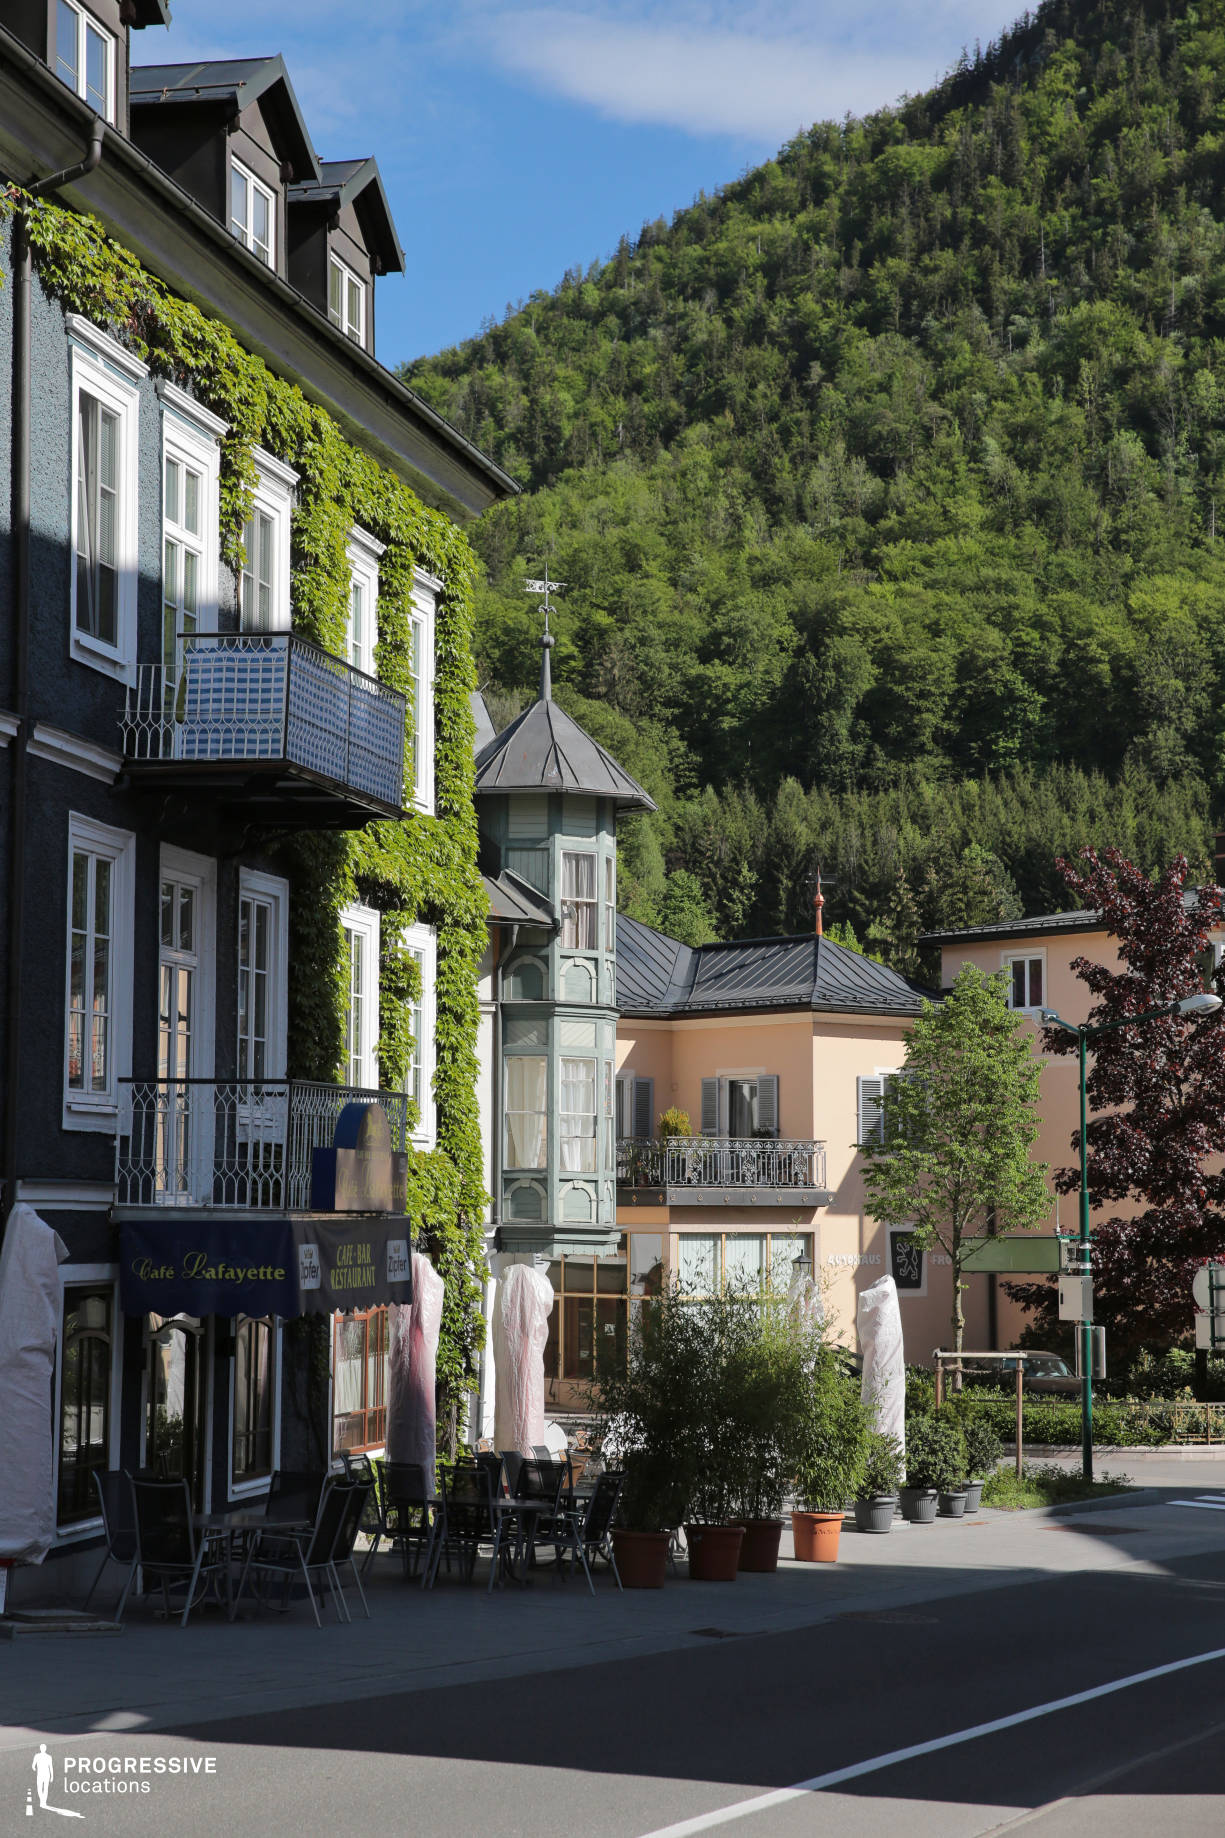 Locations in Austria: Street with Cafe, Bad Ischl